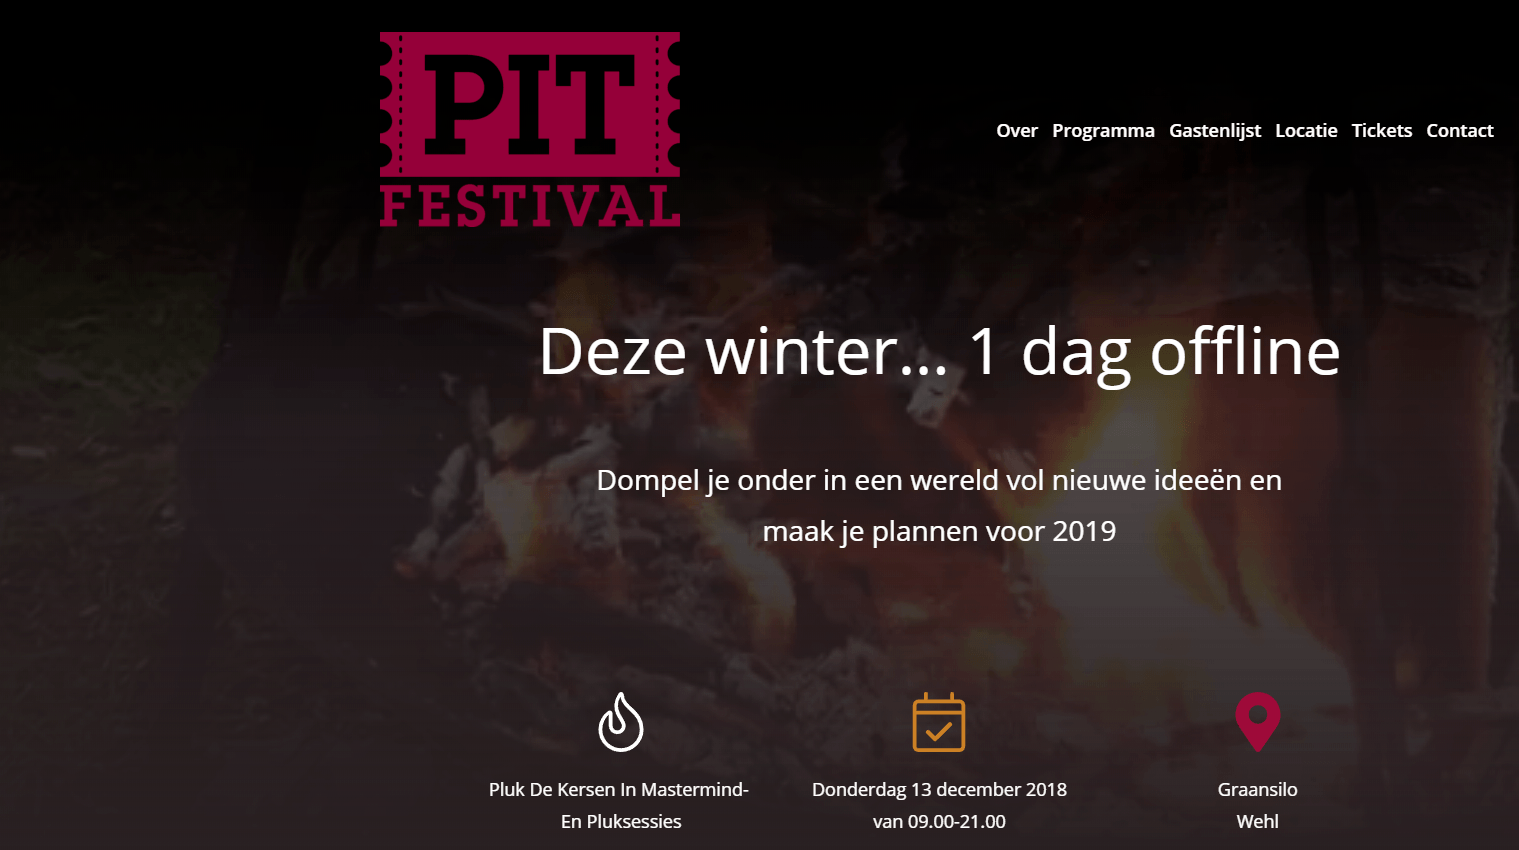 Website pitfestival